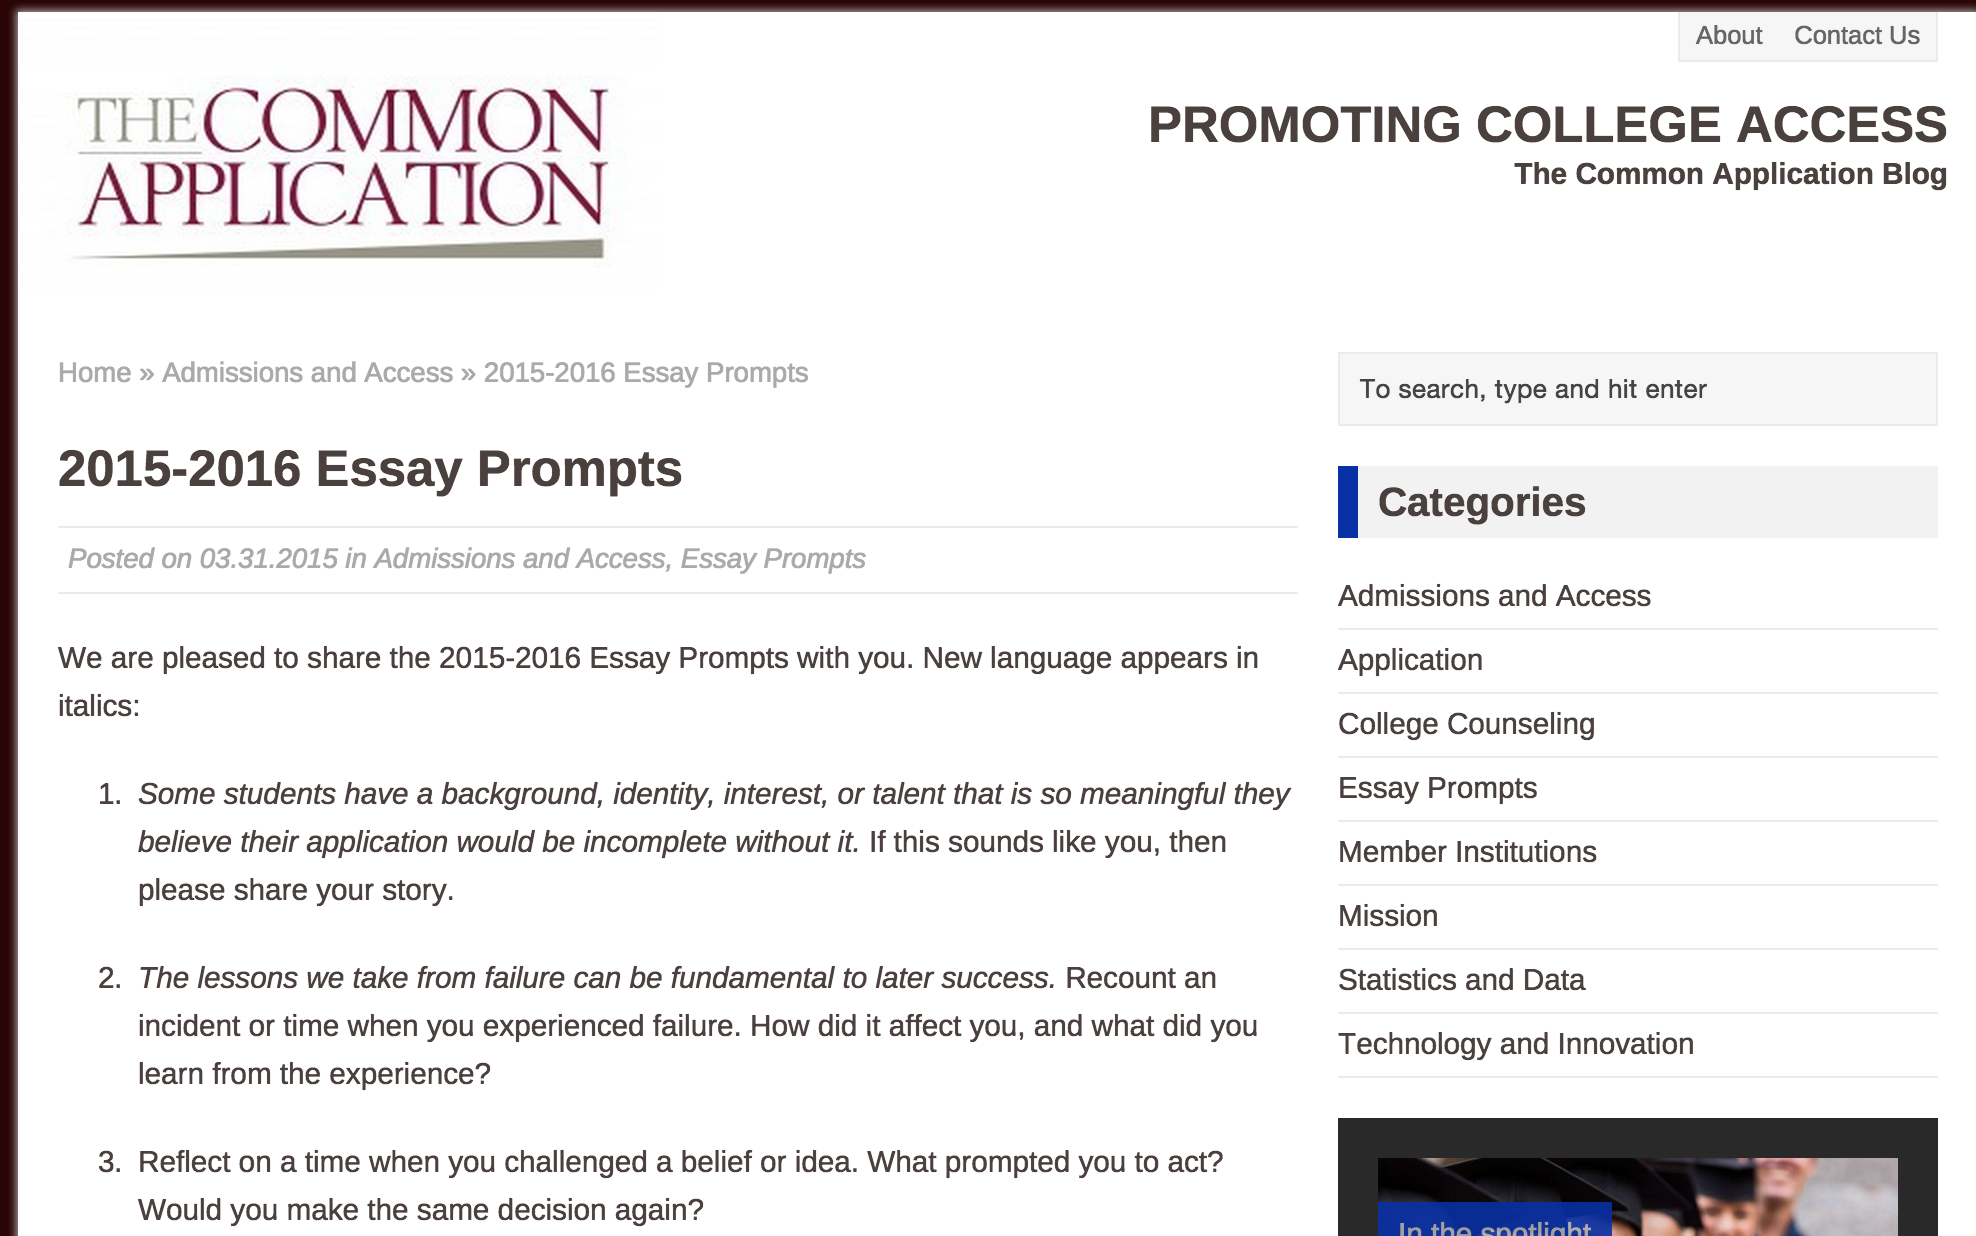 008 Screen Shot At Pm Essay Example The Common Rare Application Examples 2016 App Tips Full